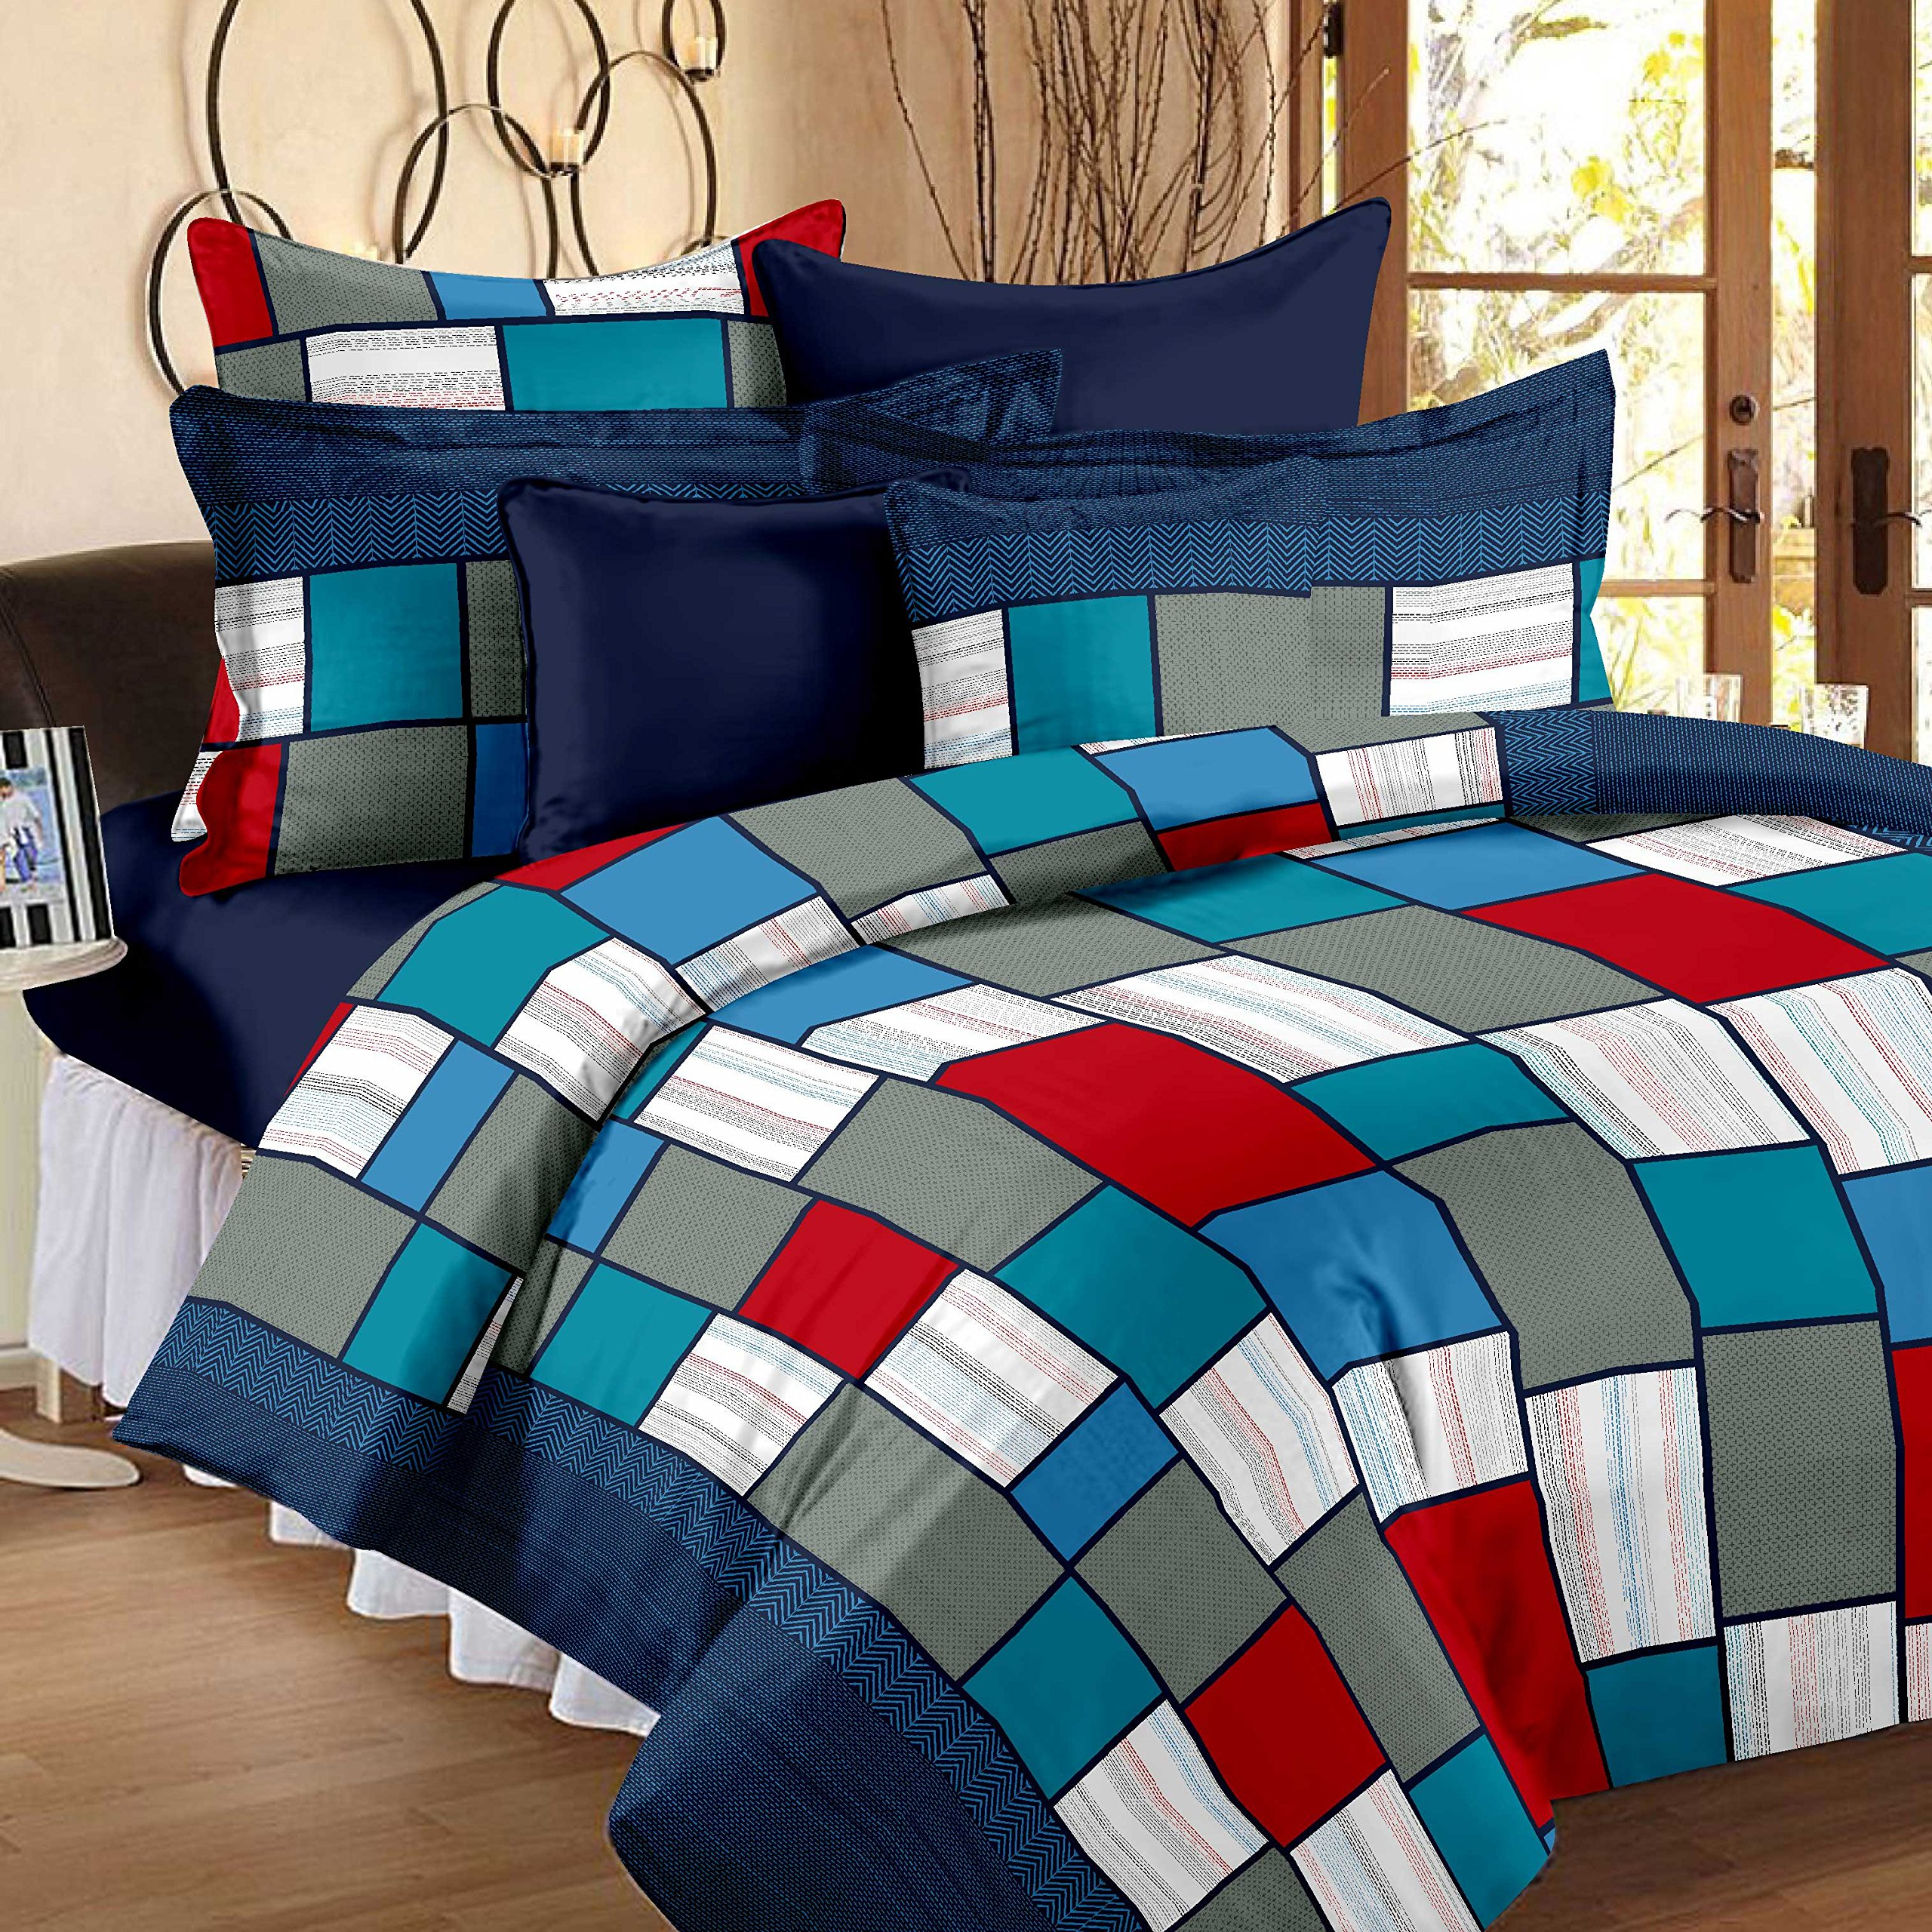 Elegant Bed Sheets By Pattern